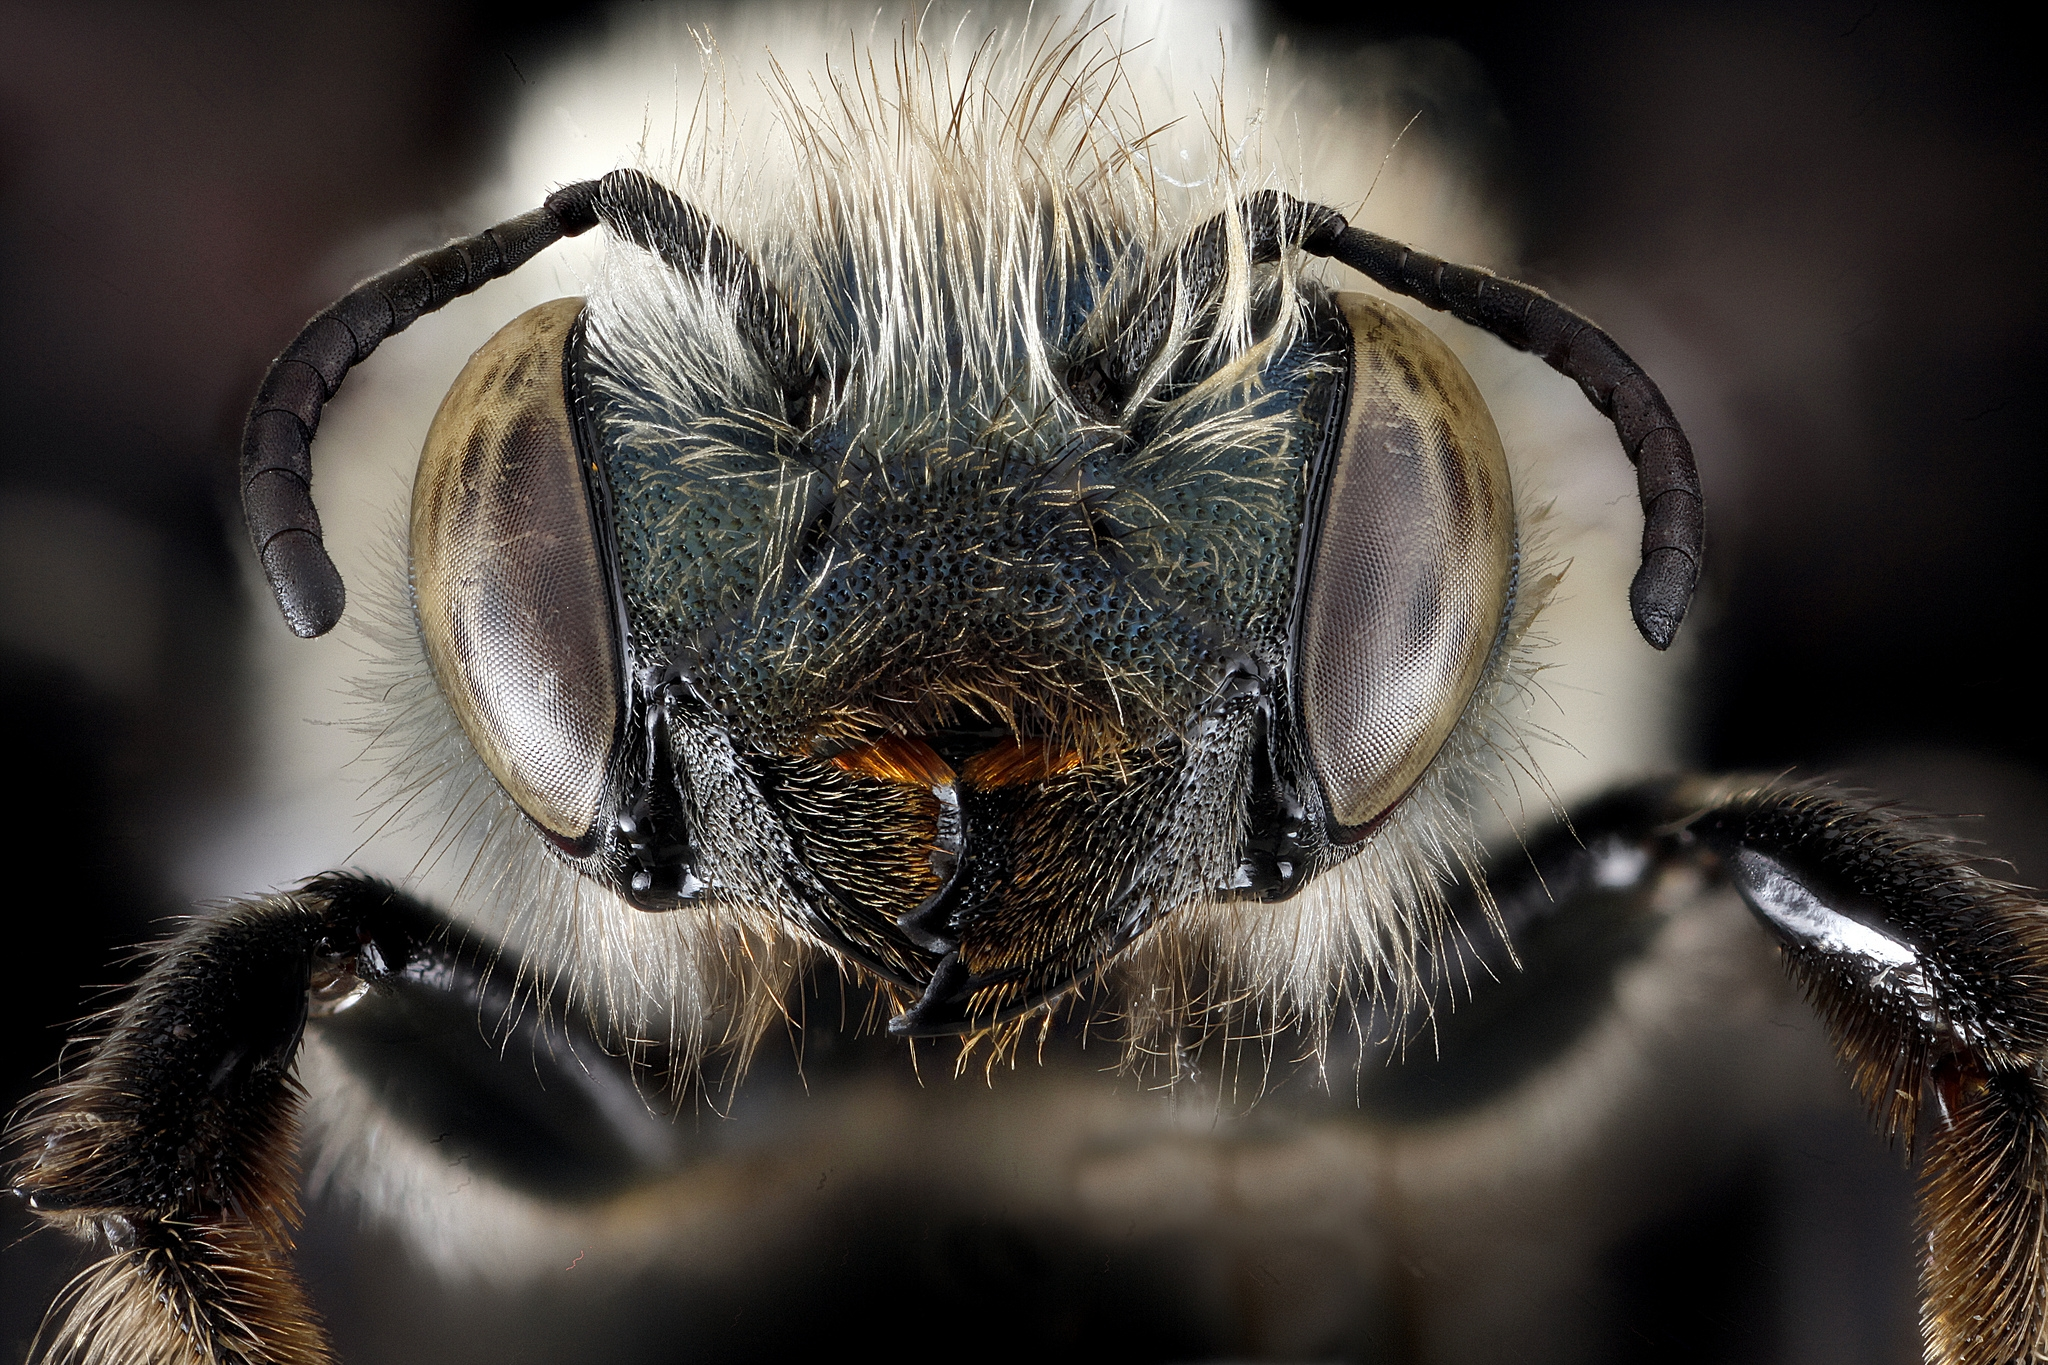 A mason bee ( Osmia simillima ), collected in Acadia National Park, Maine. Bees in the genus  Osmia  are one our most economically significant native bees because of their pollinator services to orchards and other crops. See more of the USGS Bee Inventory and Monitoring Lab's images  here.